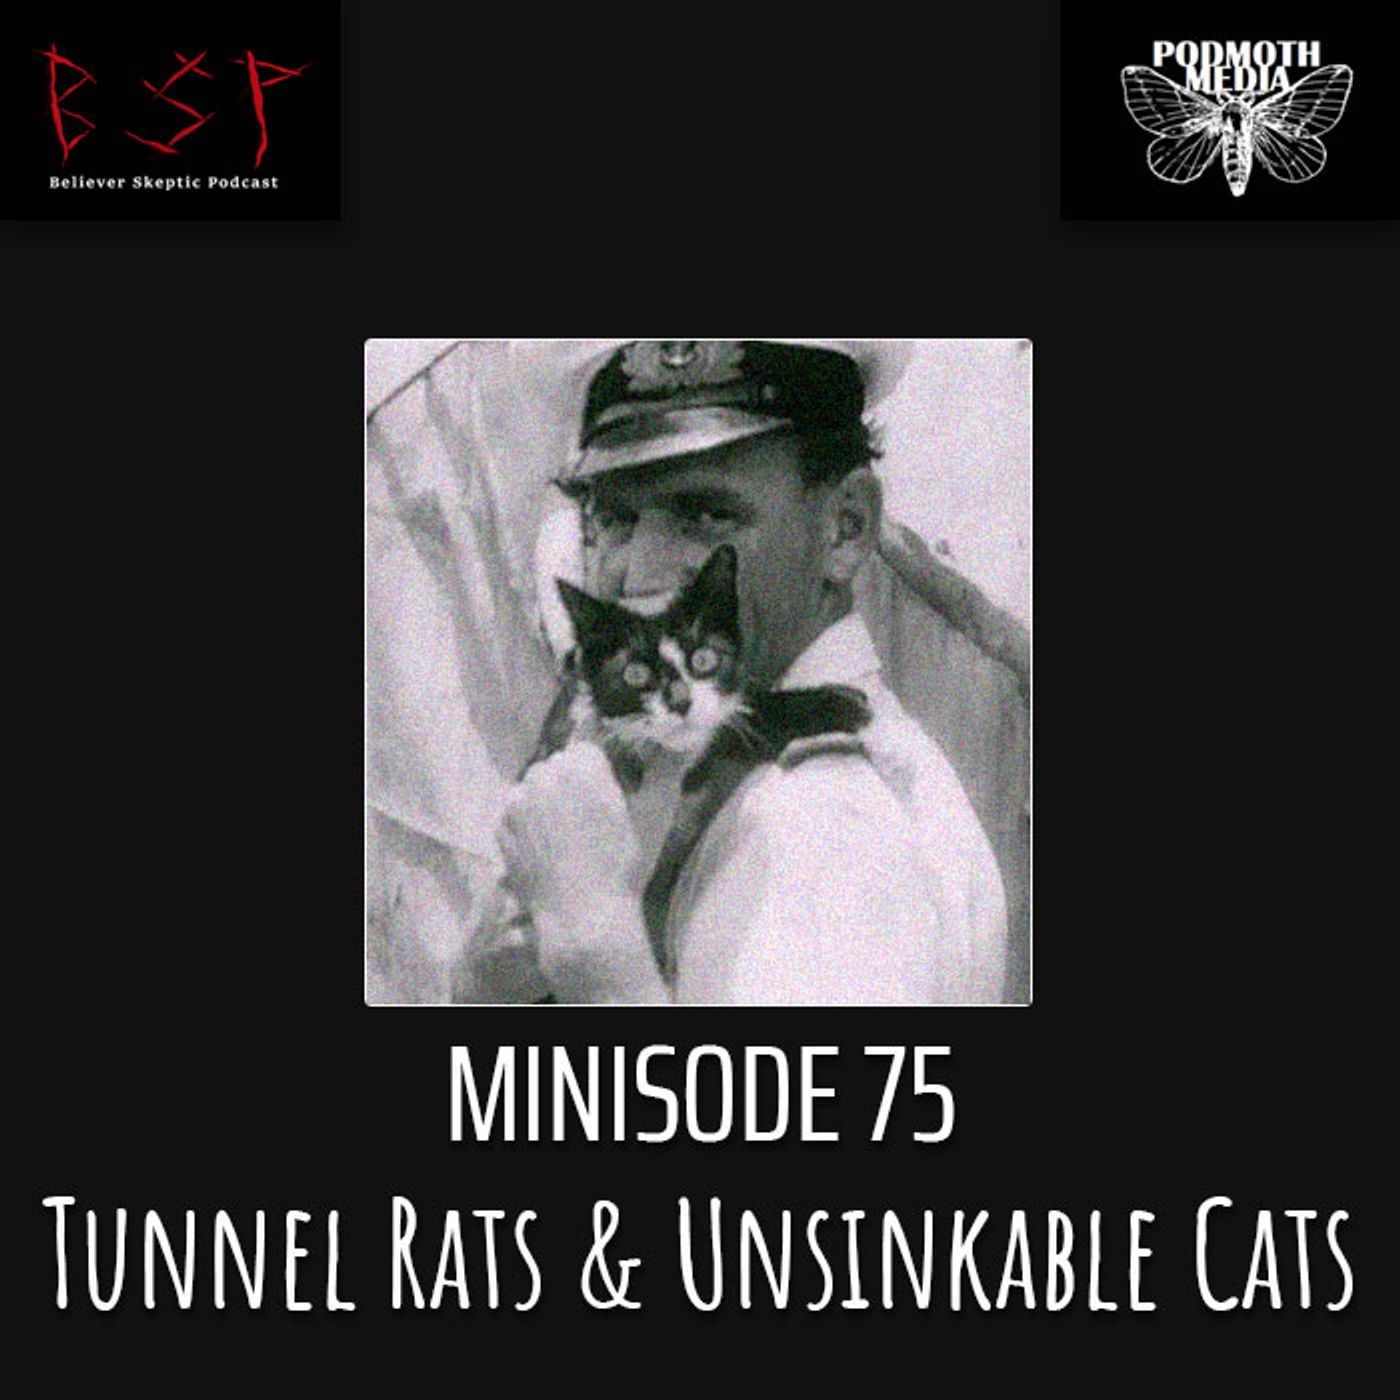 Tunnel Rats & Unsinkable Cats